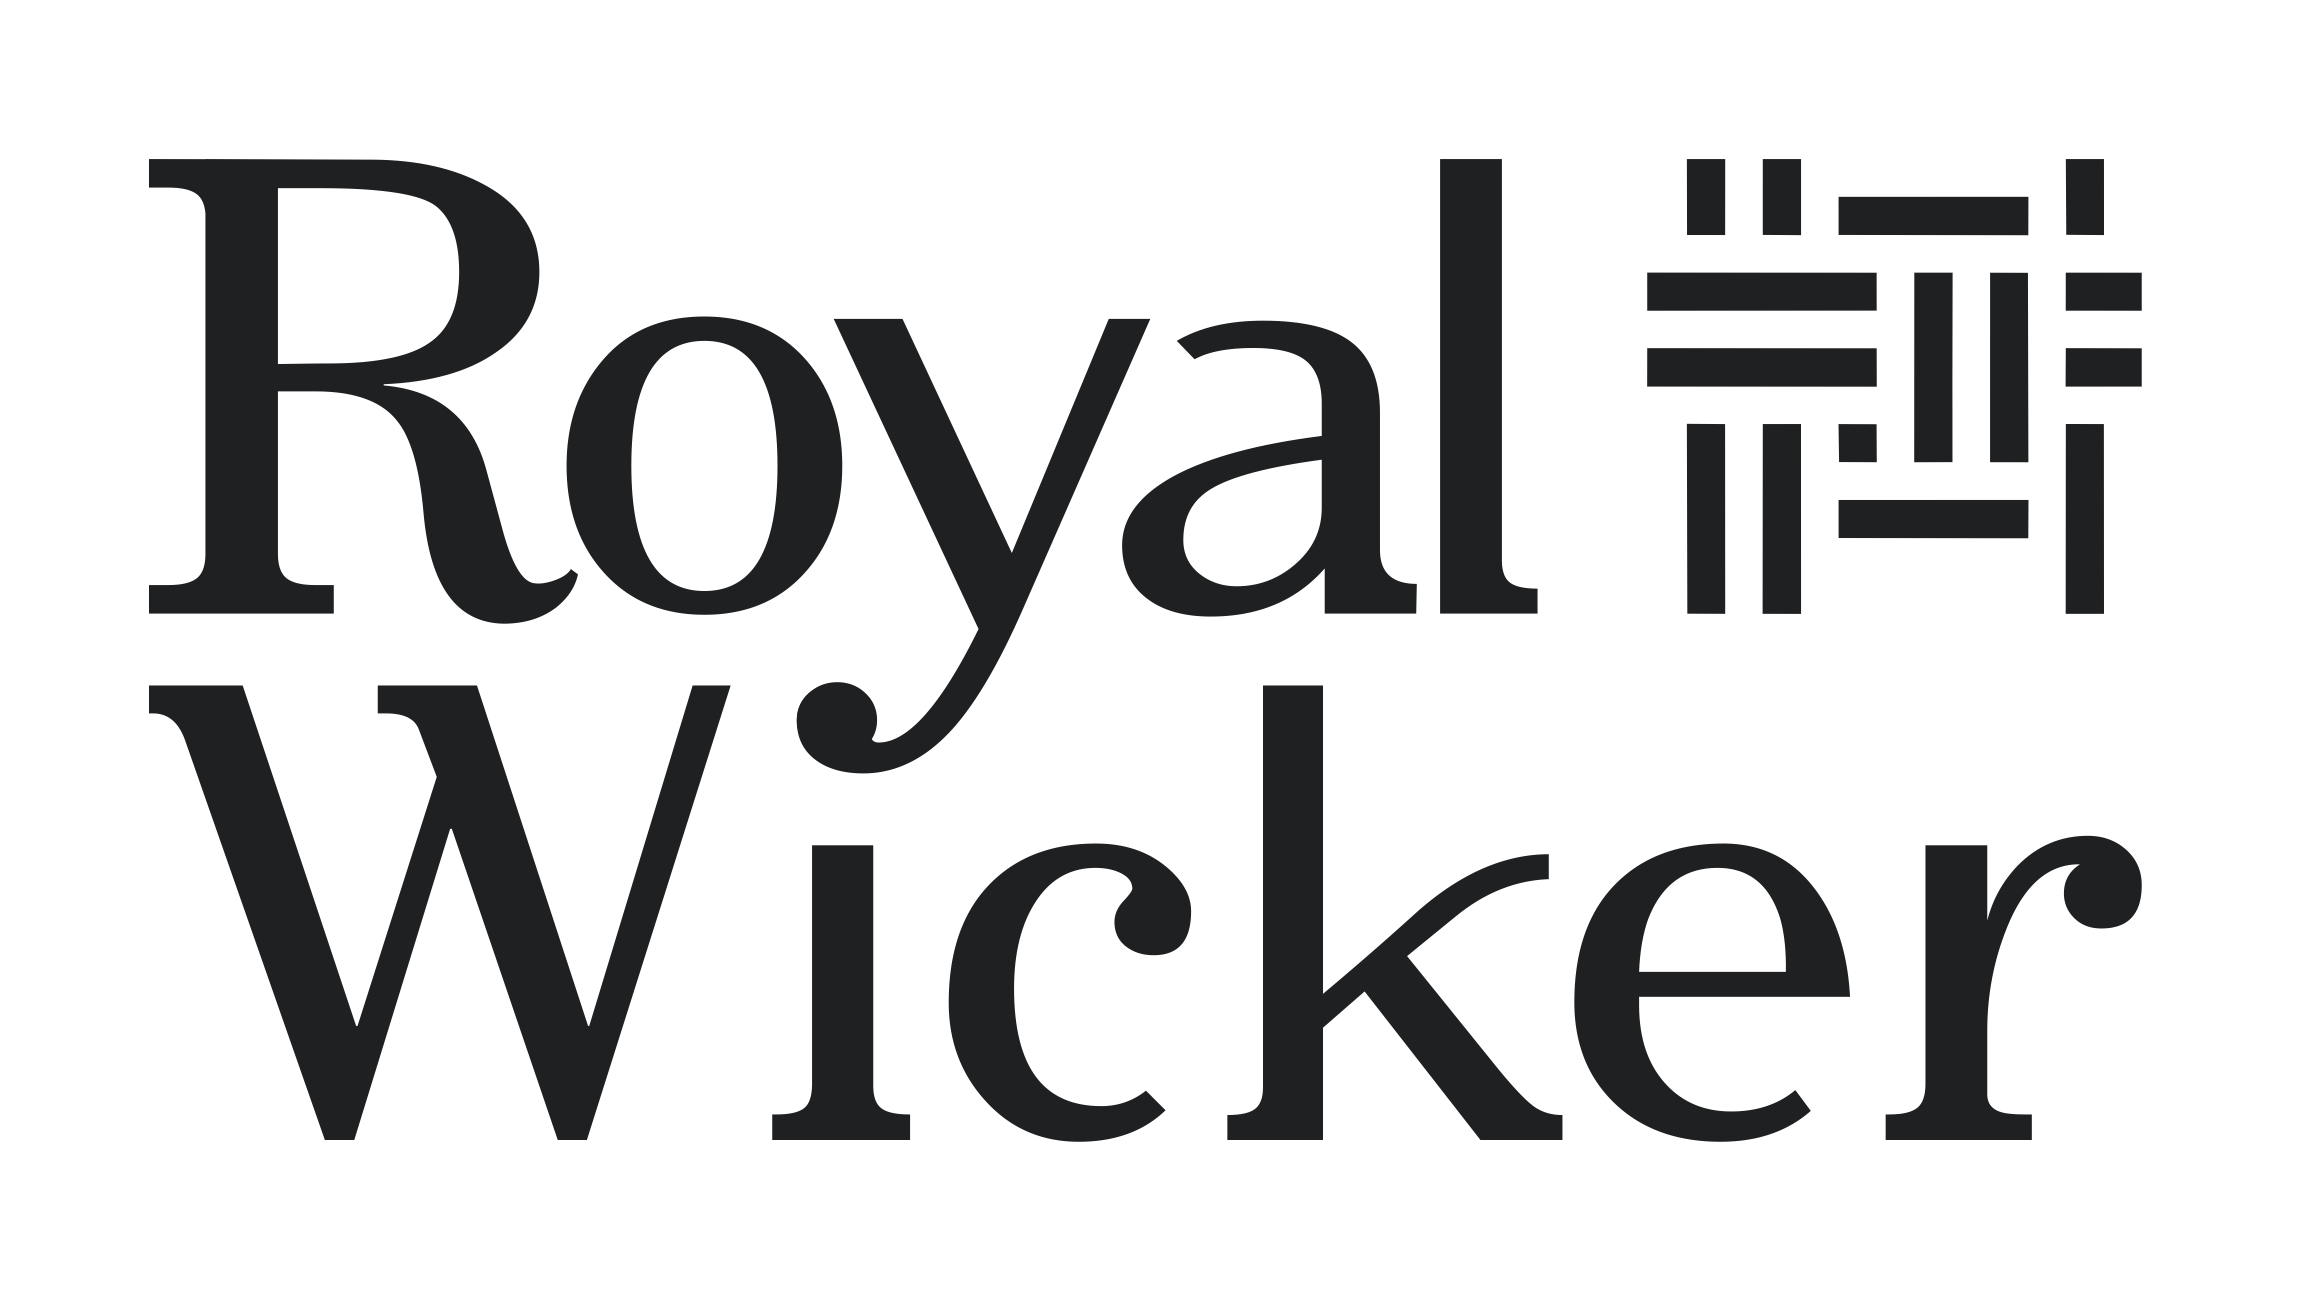 Royal Wicker